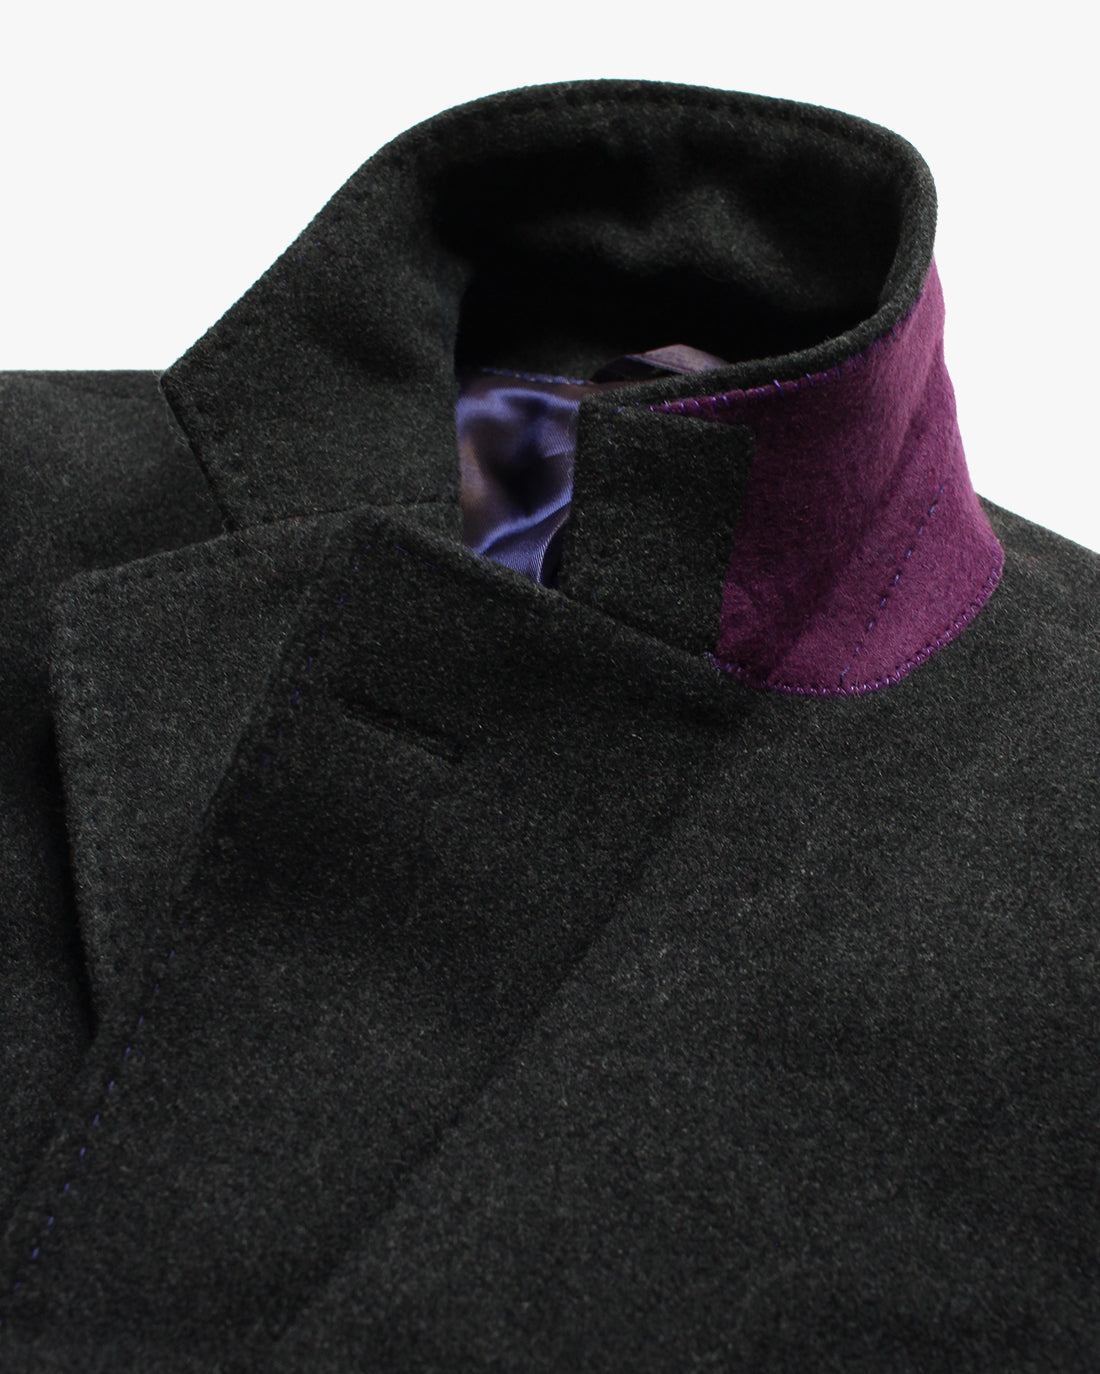 Charcoal Melton SB3 Overcoat - Holland Esquire